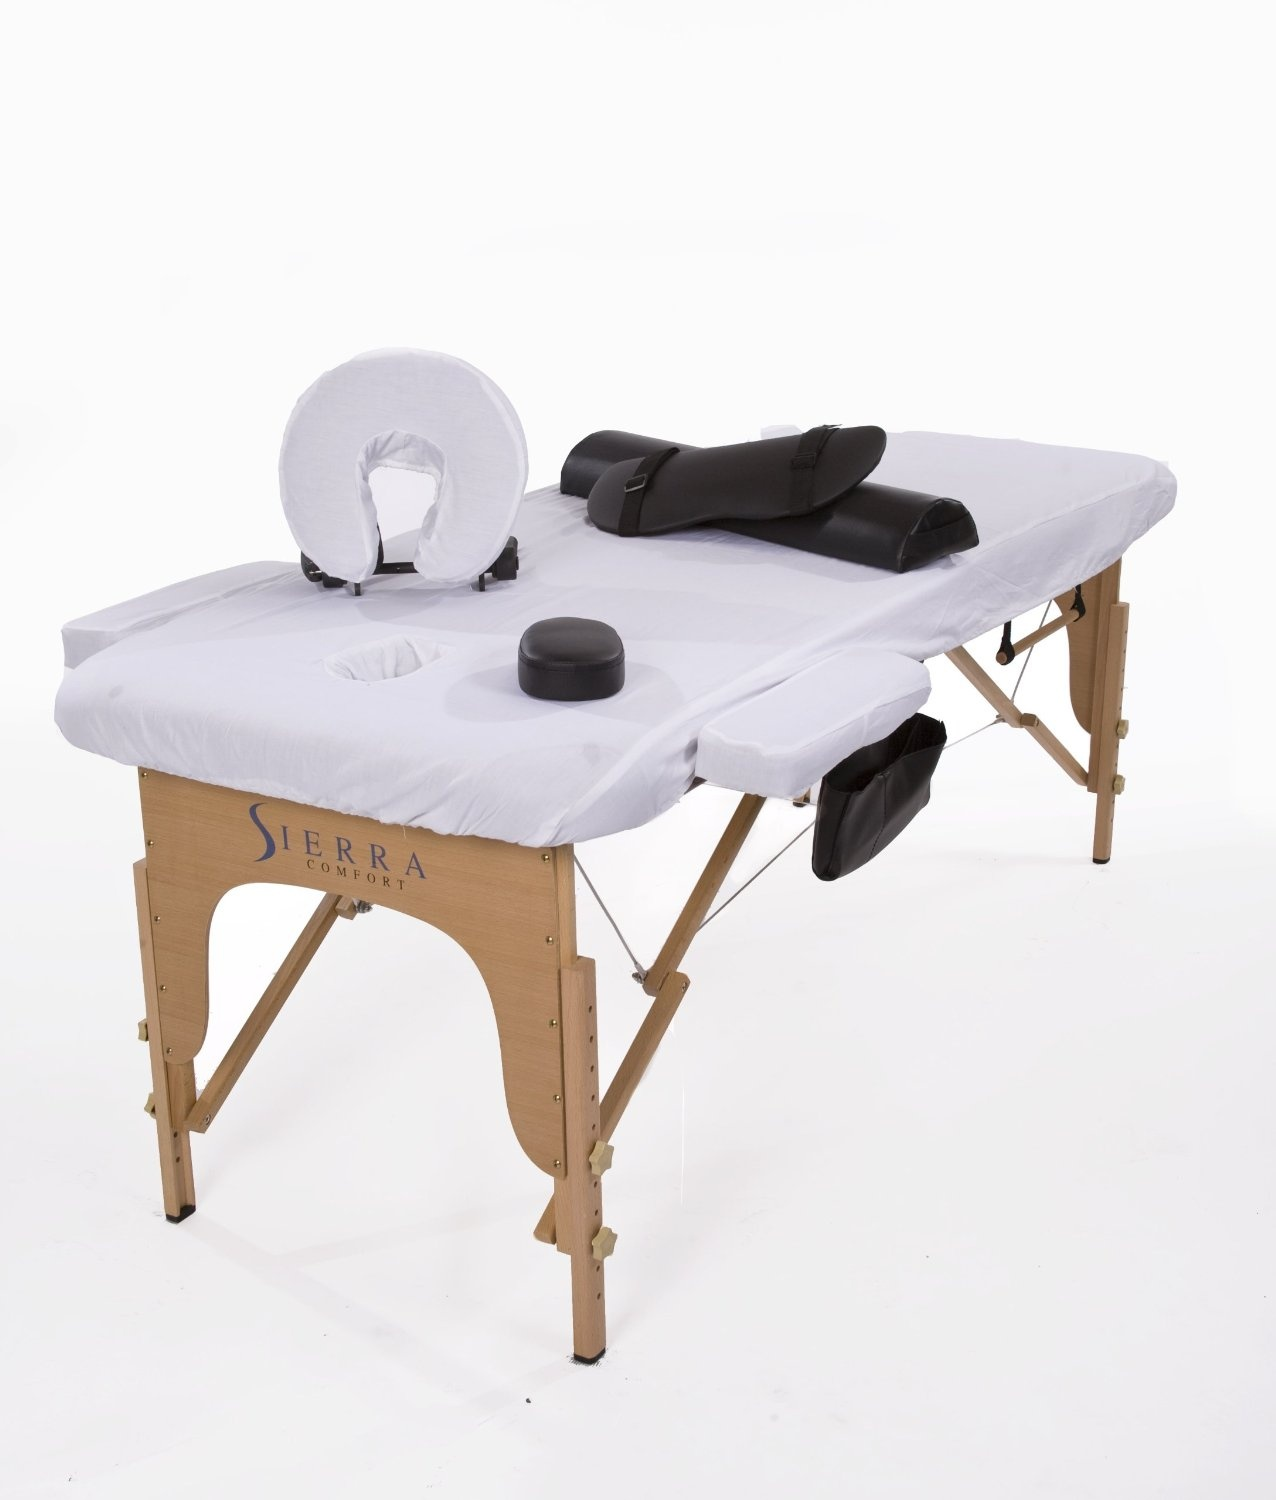 portable reviews to massage how comforter comfort the table sierra chose craft tables b